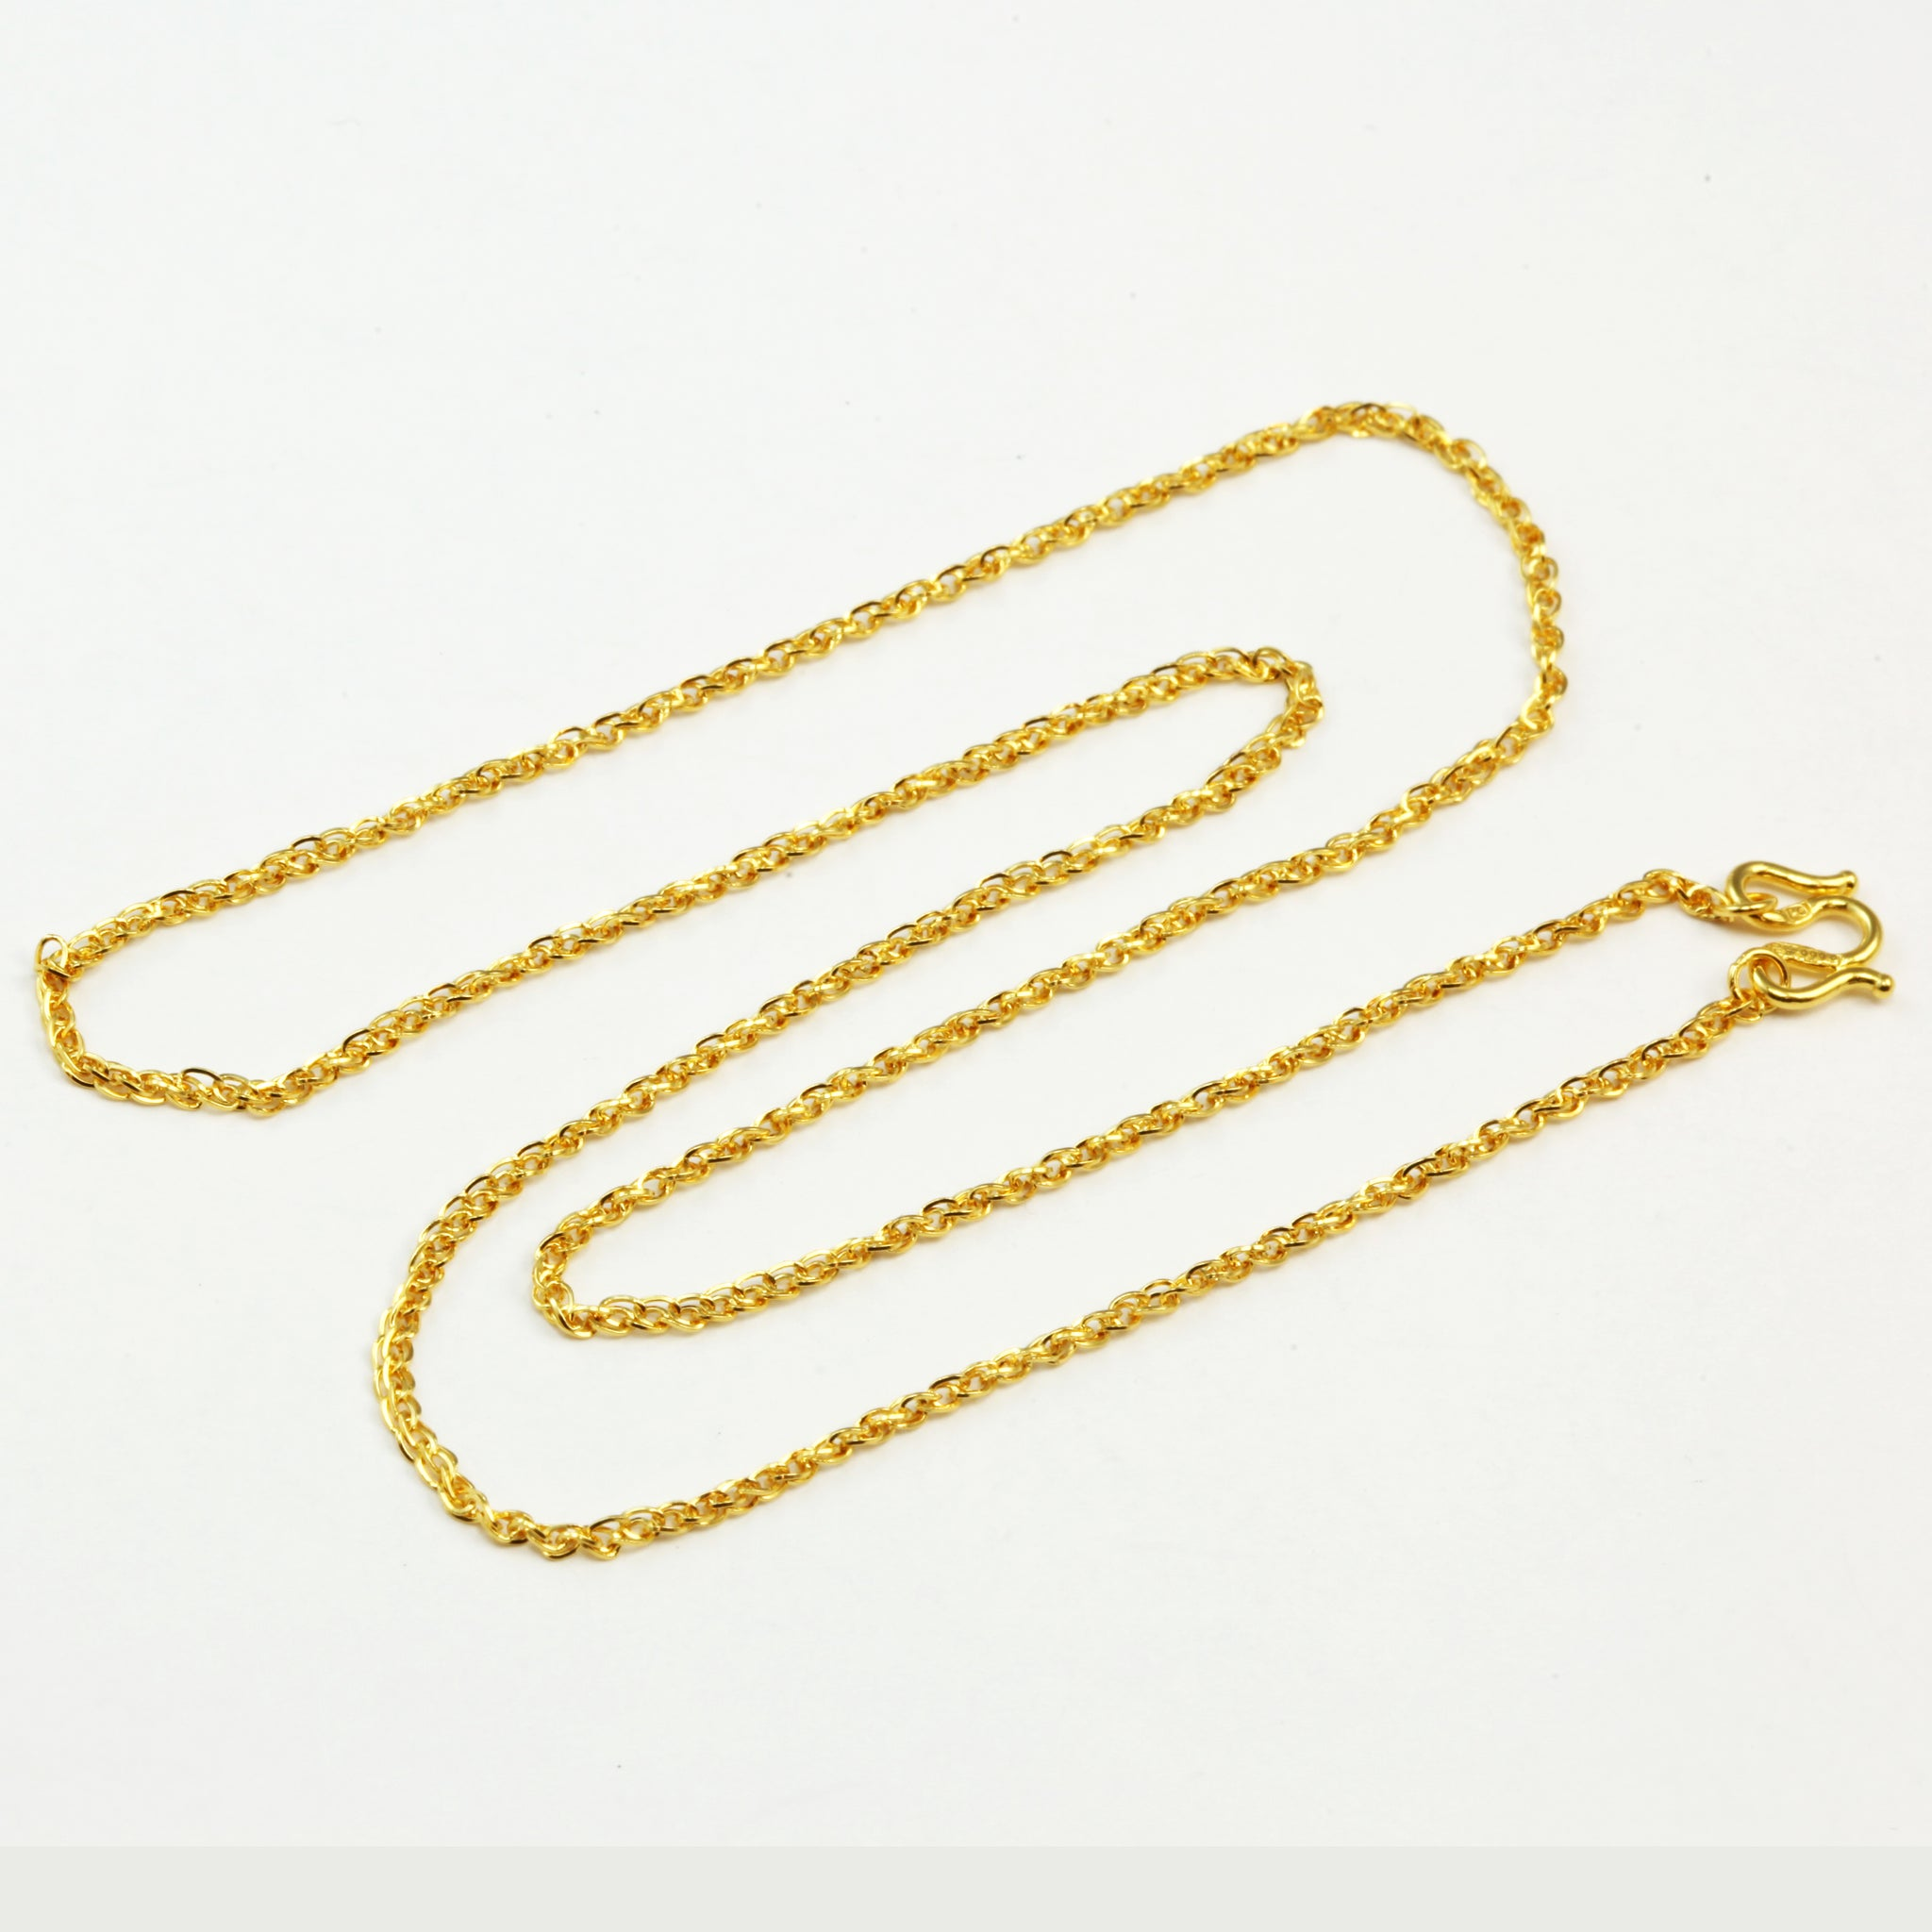 24K Solid Yellow Gold Square Link Chain 4.2 Grams